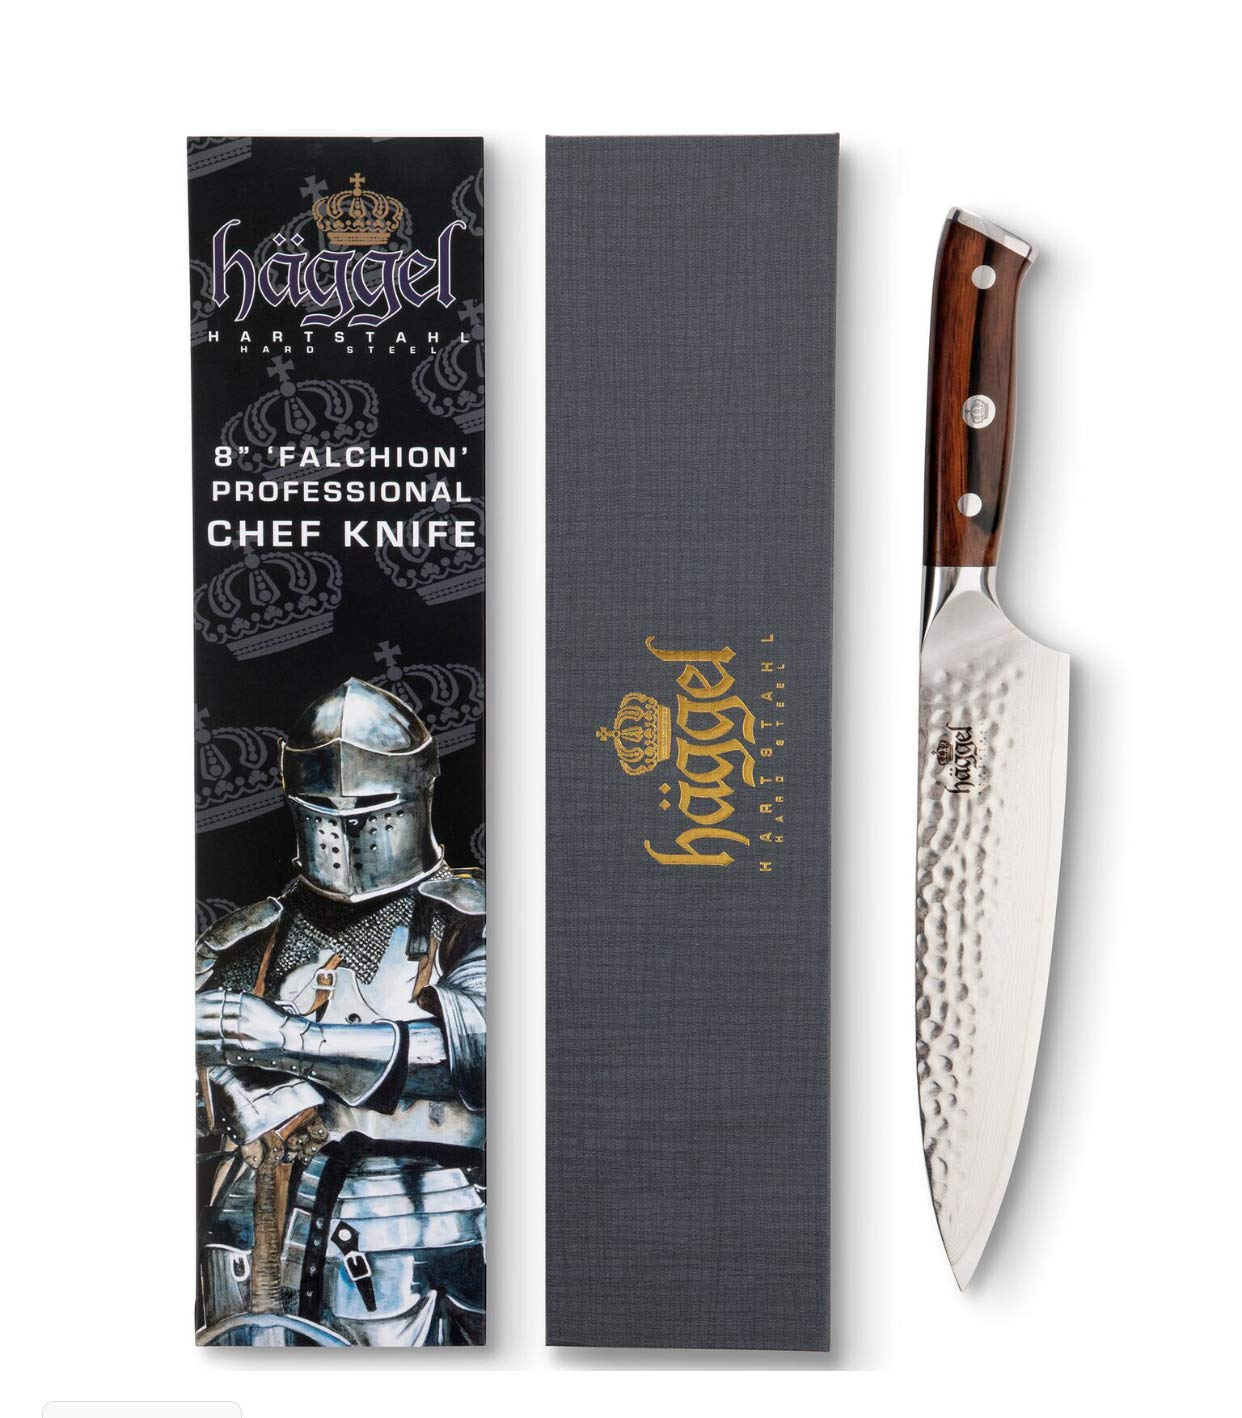 8' Professional Chef Knife Damascus Steel - VG10 Grade - Best Value Ultra Sharp Kitchen Knife - Hand Hammered Stainless Steel blade - Balanced Full Tang Rosewood Handle by Haggel